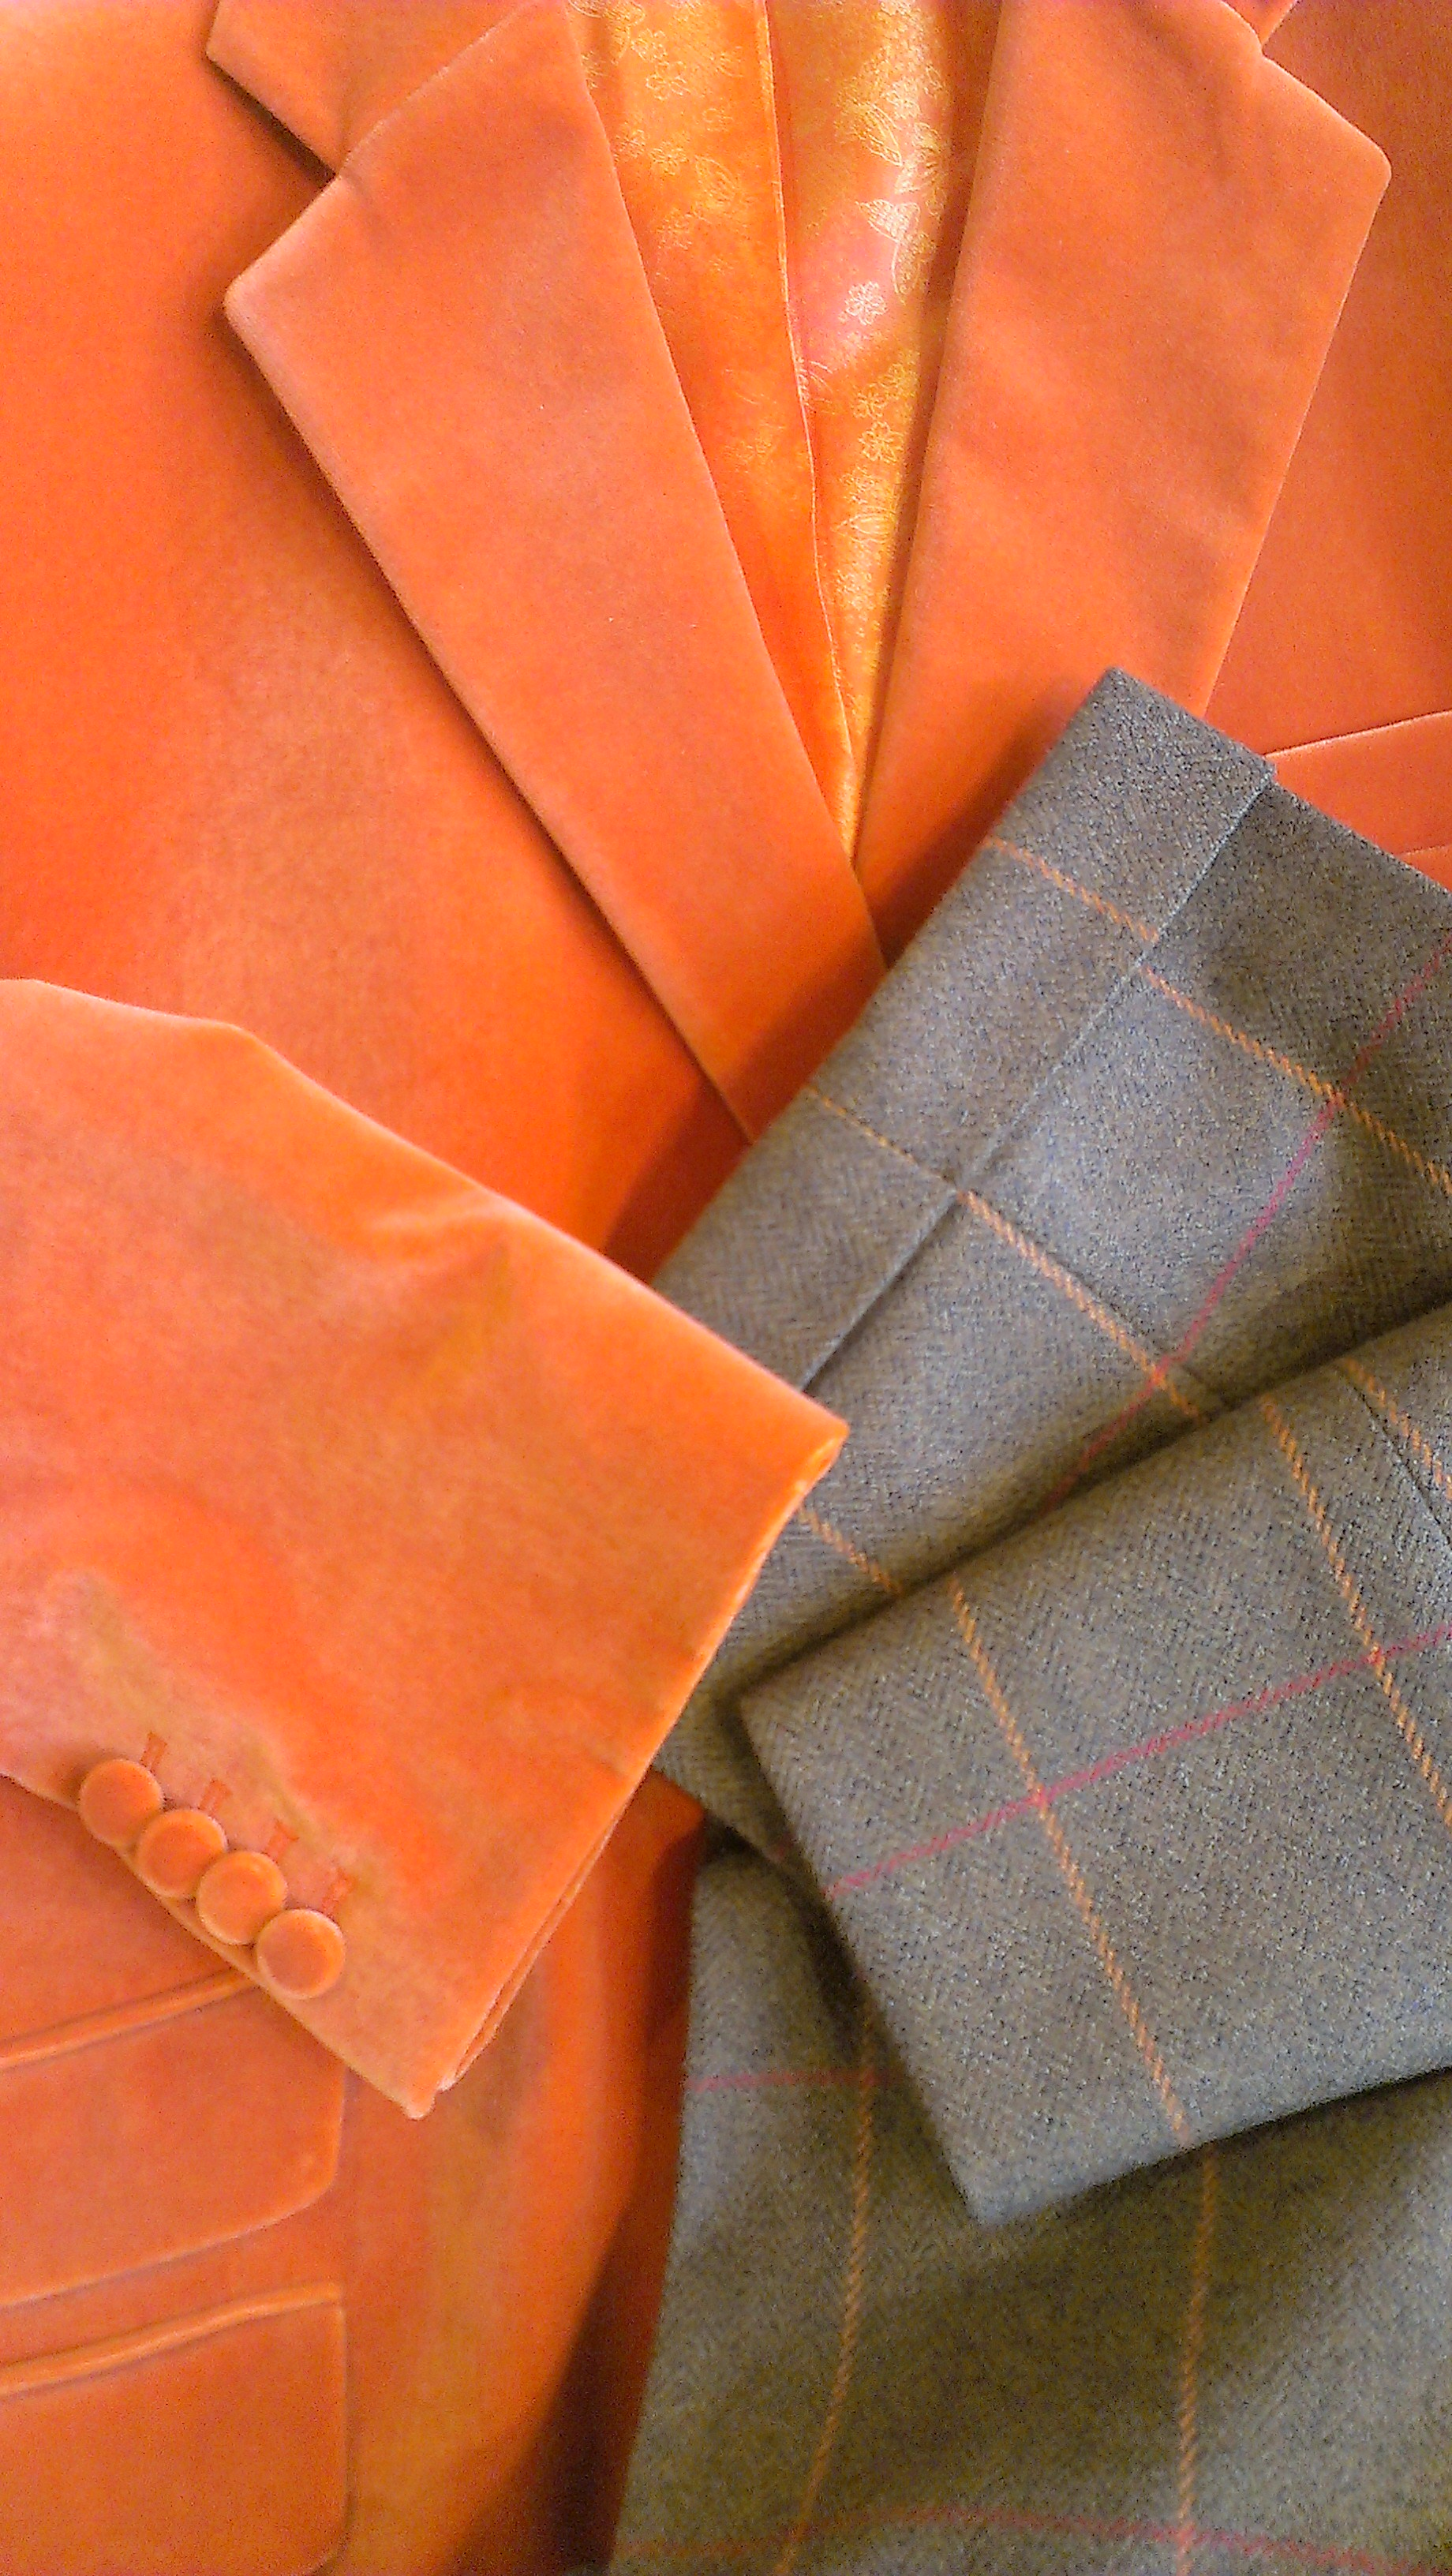 orange-velvet-jacket-tweed-trousers-all-uk-made.jpg